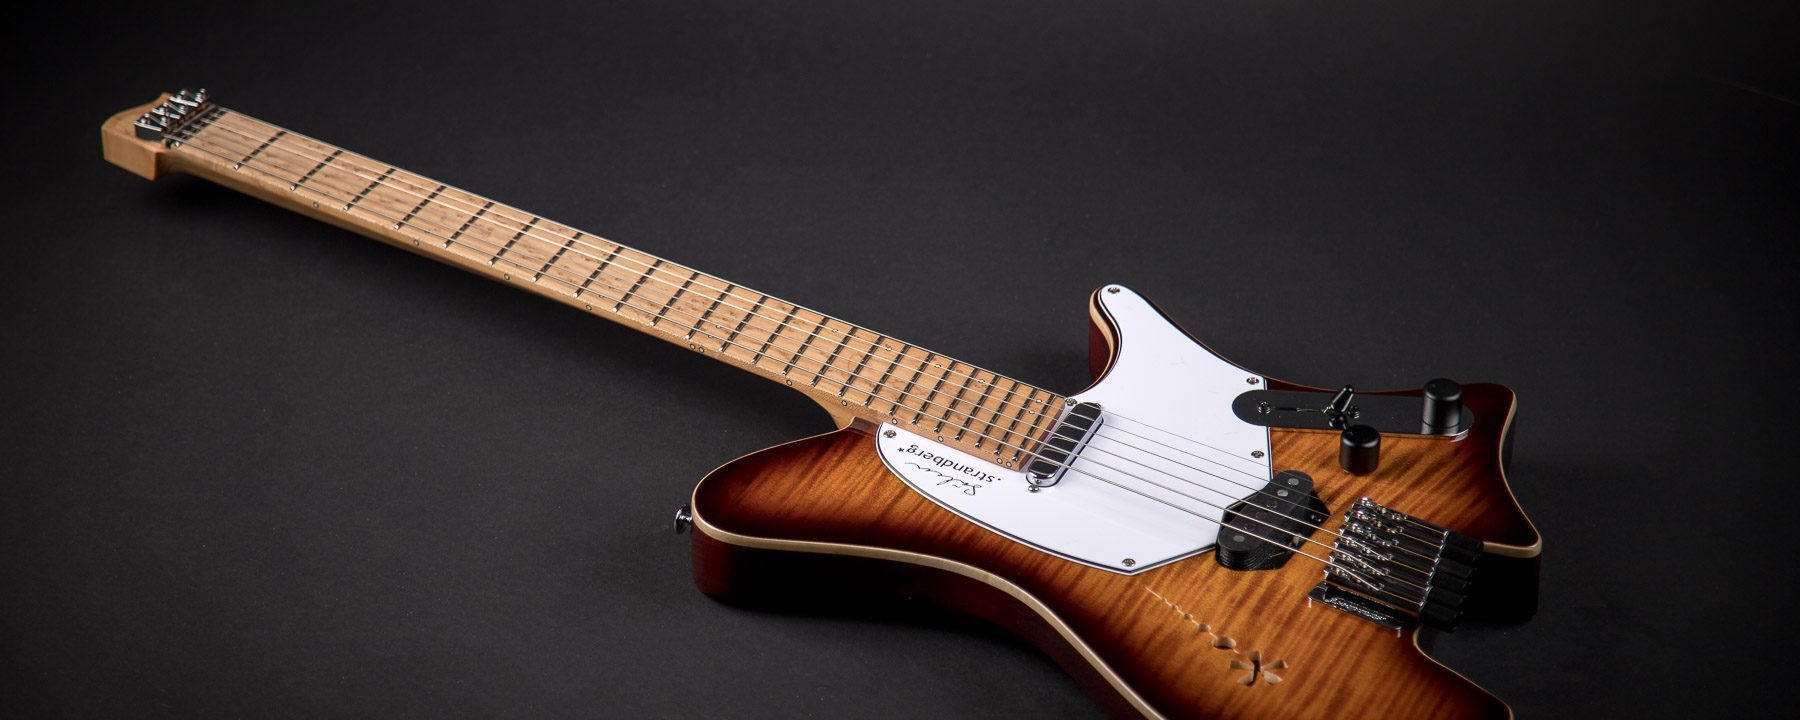 The Sälen Deluxe Beauty Shot Headless Guitar from Strandberg